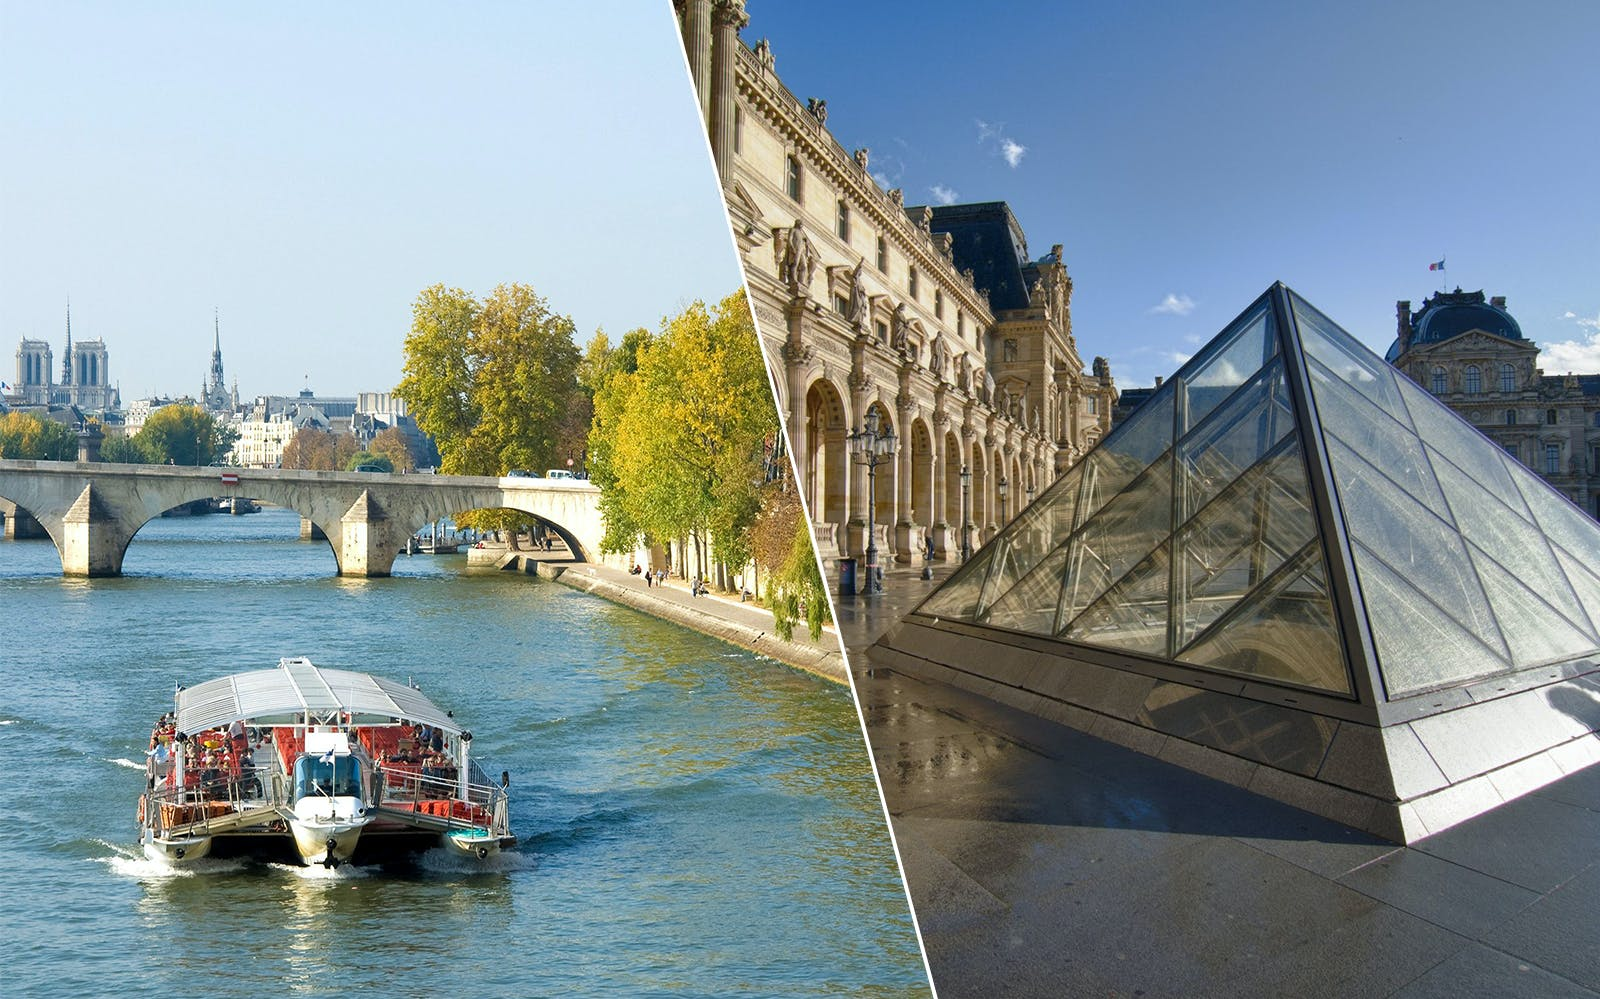 Dedicated Entrance Tickets to Louvre Museum + Seine River Cruise